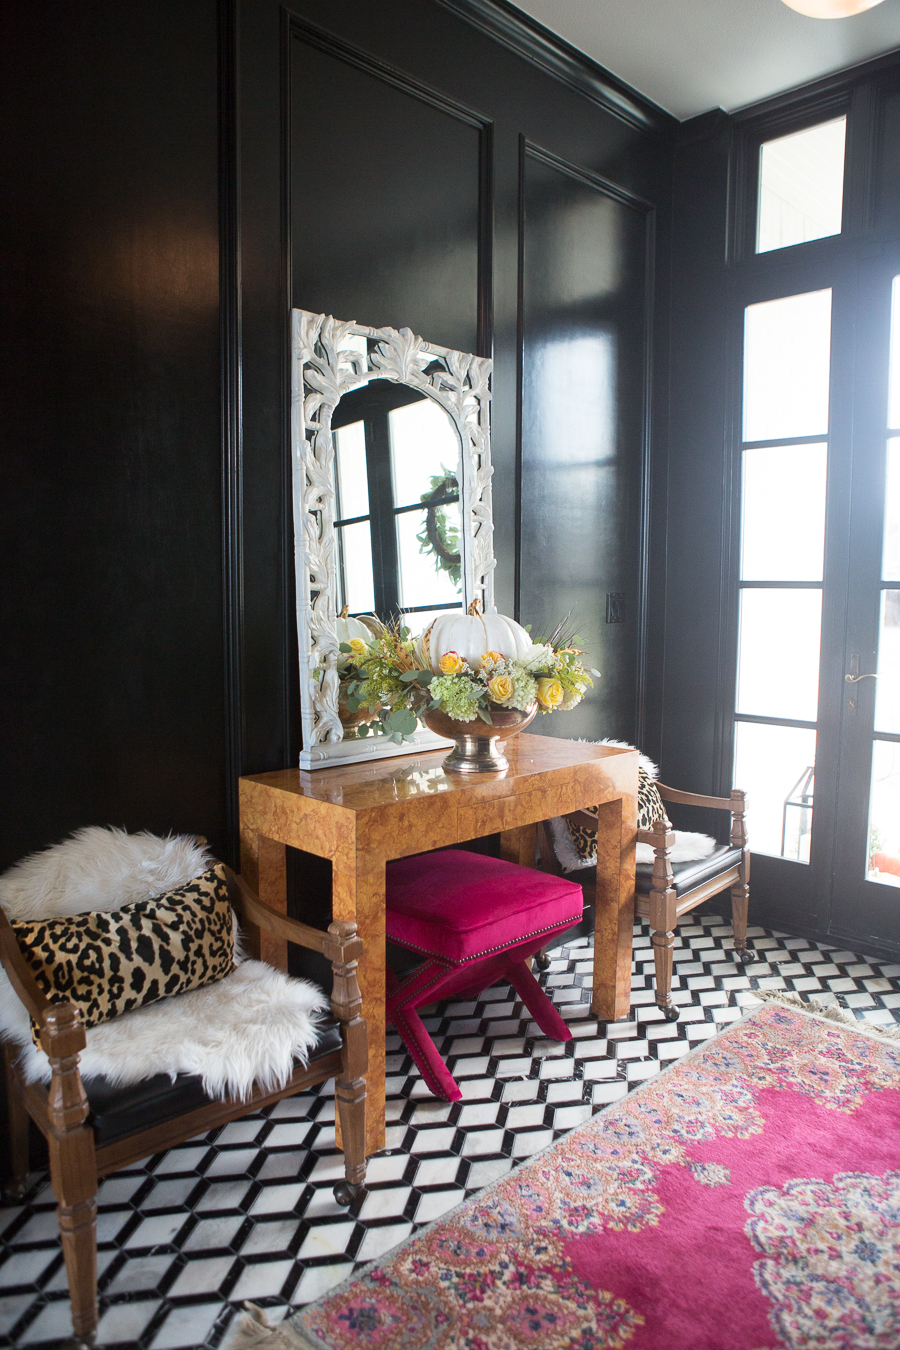 Loveliest Looks of Fall Home Tour Beautiful Fall Home Decor and Fall Fashion Ideas entryway with black paneling painted high gloss and marble black and white floors with a burl wood console table and a white mirror hanging about it and a silver urn floral pumpkin centerpiece sitting on the table